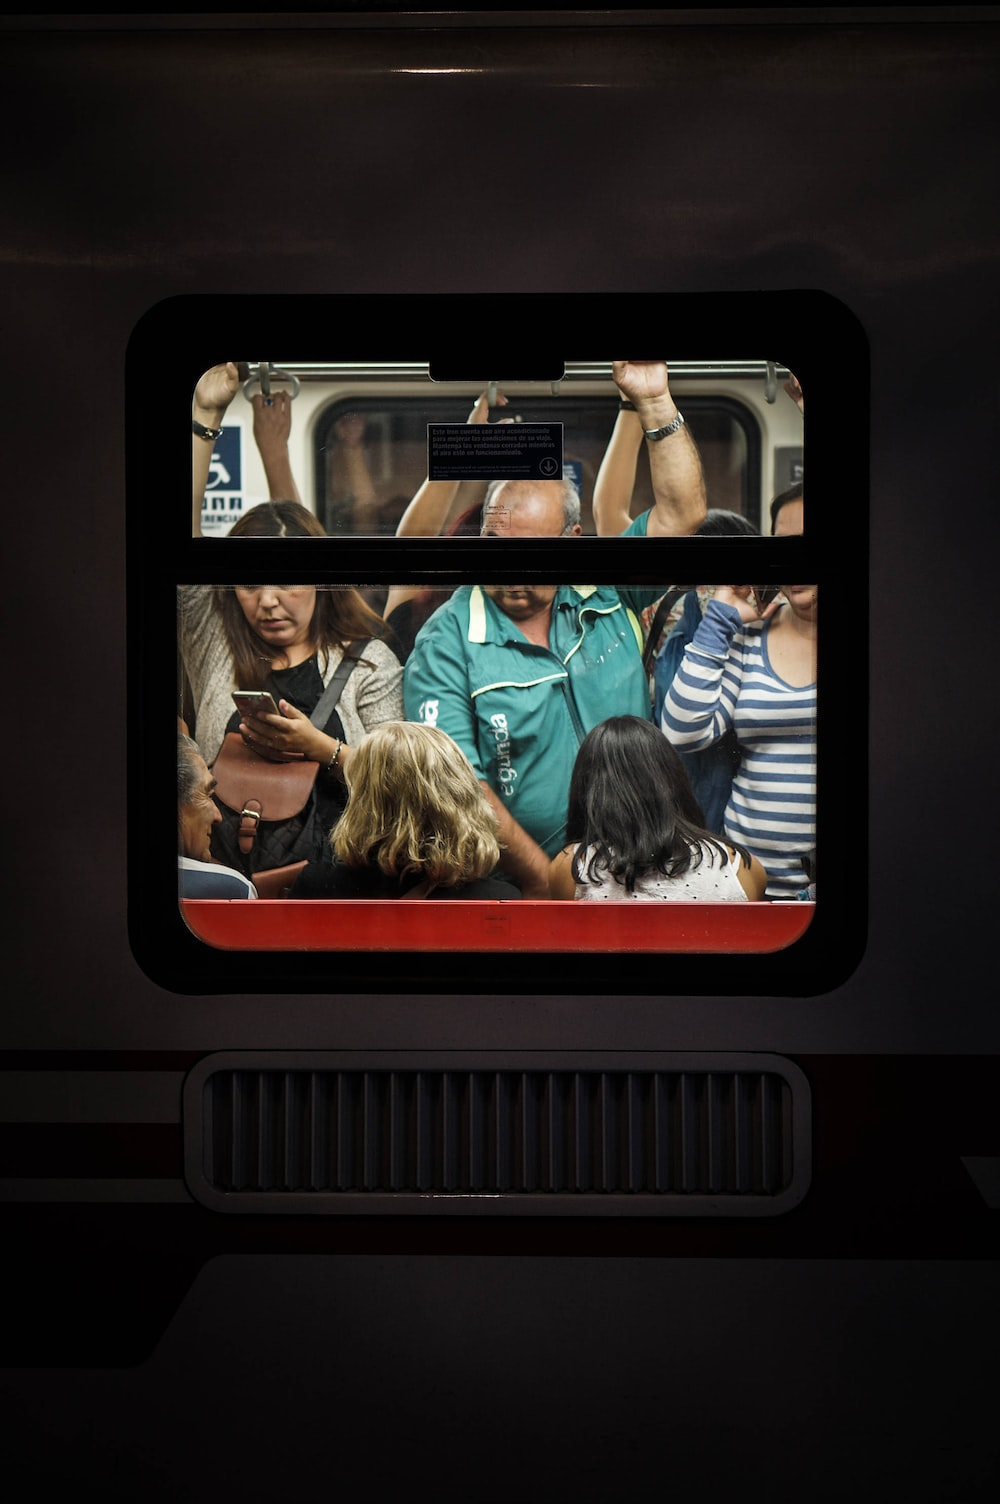 people standing in a train car